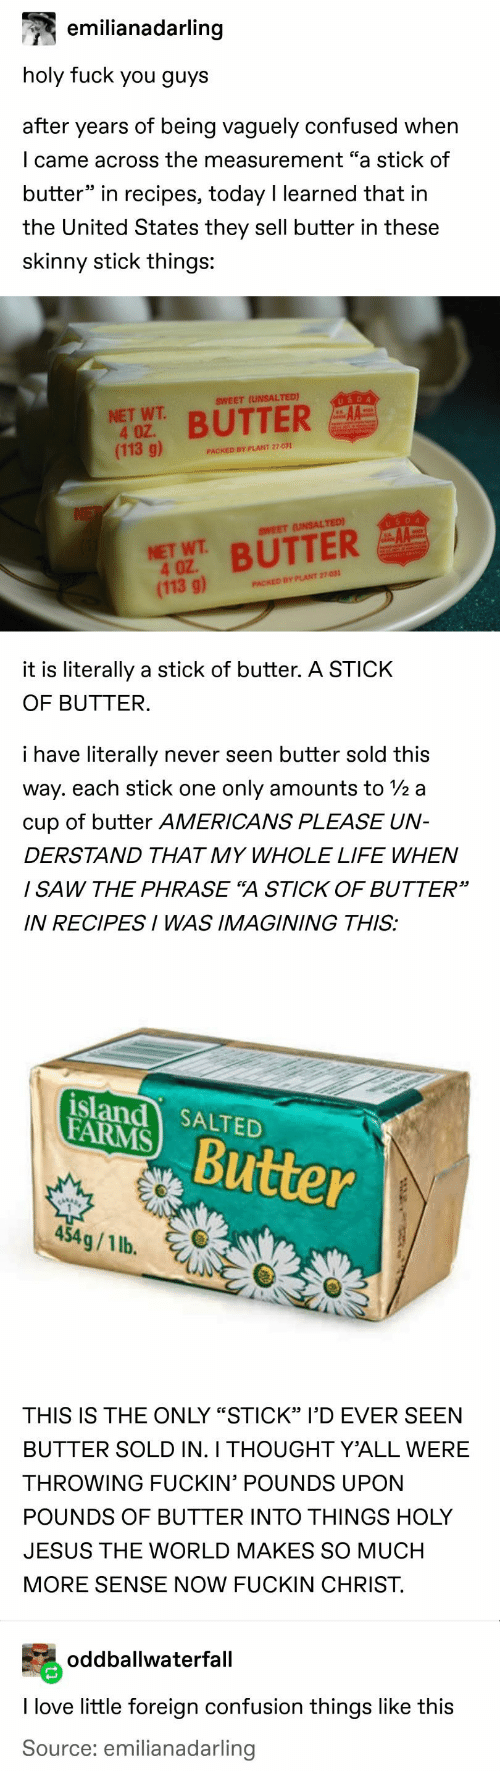 "Confused, Jesus, and Life: emilianadarling  holy fuck you guys  after years of being vaguely confused when  I came across the measurement ""a stick of  butter"" in recipes, today I learned that in  the United States they sell butter in these  skinny stick things:  USDA  SWEET (UNSALTED)  NET WT  4 OZ.  (113 g)  BUTTER  PACKED BY PLANT 27-031  NE  USDA  AA  SWEET (UNSALTED)  NET WT BUTTER  4 OZ  (113 g)  PACKED BY PLANT 27-031  it is literally a stick of butter. A STICK  OF BUTTER.  i have literally  never seen butter sold this  way. each stick one  only amounts to 2 a  cup of butter AMERICANS PLEASE UN-  DERSTAND THAT MY WHOLE LIFE WHEN  I SAW THE PHRASE ""A STICK OF BUTTER""  IN RECIPESI WAS IMAGINING THIS:  island SALTED  FARMS  Butter  454g/1 lb.  THIS IS THE ONLY ""STICK"" I'D EVER SEEN  BUTTER SOLD IN. I THOUGHT Y'ALL WERE  THROWING FUCKIN' POUNDS UPON  POUNDS OF BUTTER INTO THINGS HOLY  JESUS THE WORLD MAKES SO MUCH  MORE SENSE NOW FUCKIN CHRIST  oddballwaterfall  I love little foreign confusion things like this  Source: emilianadarling"